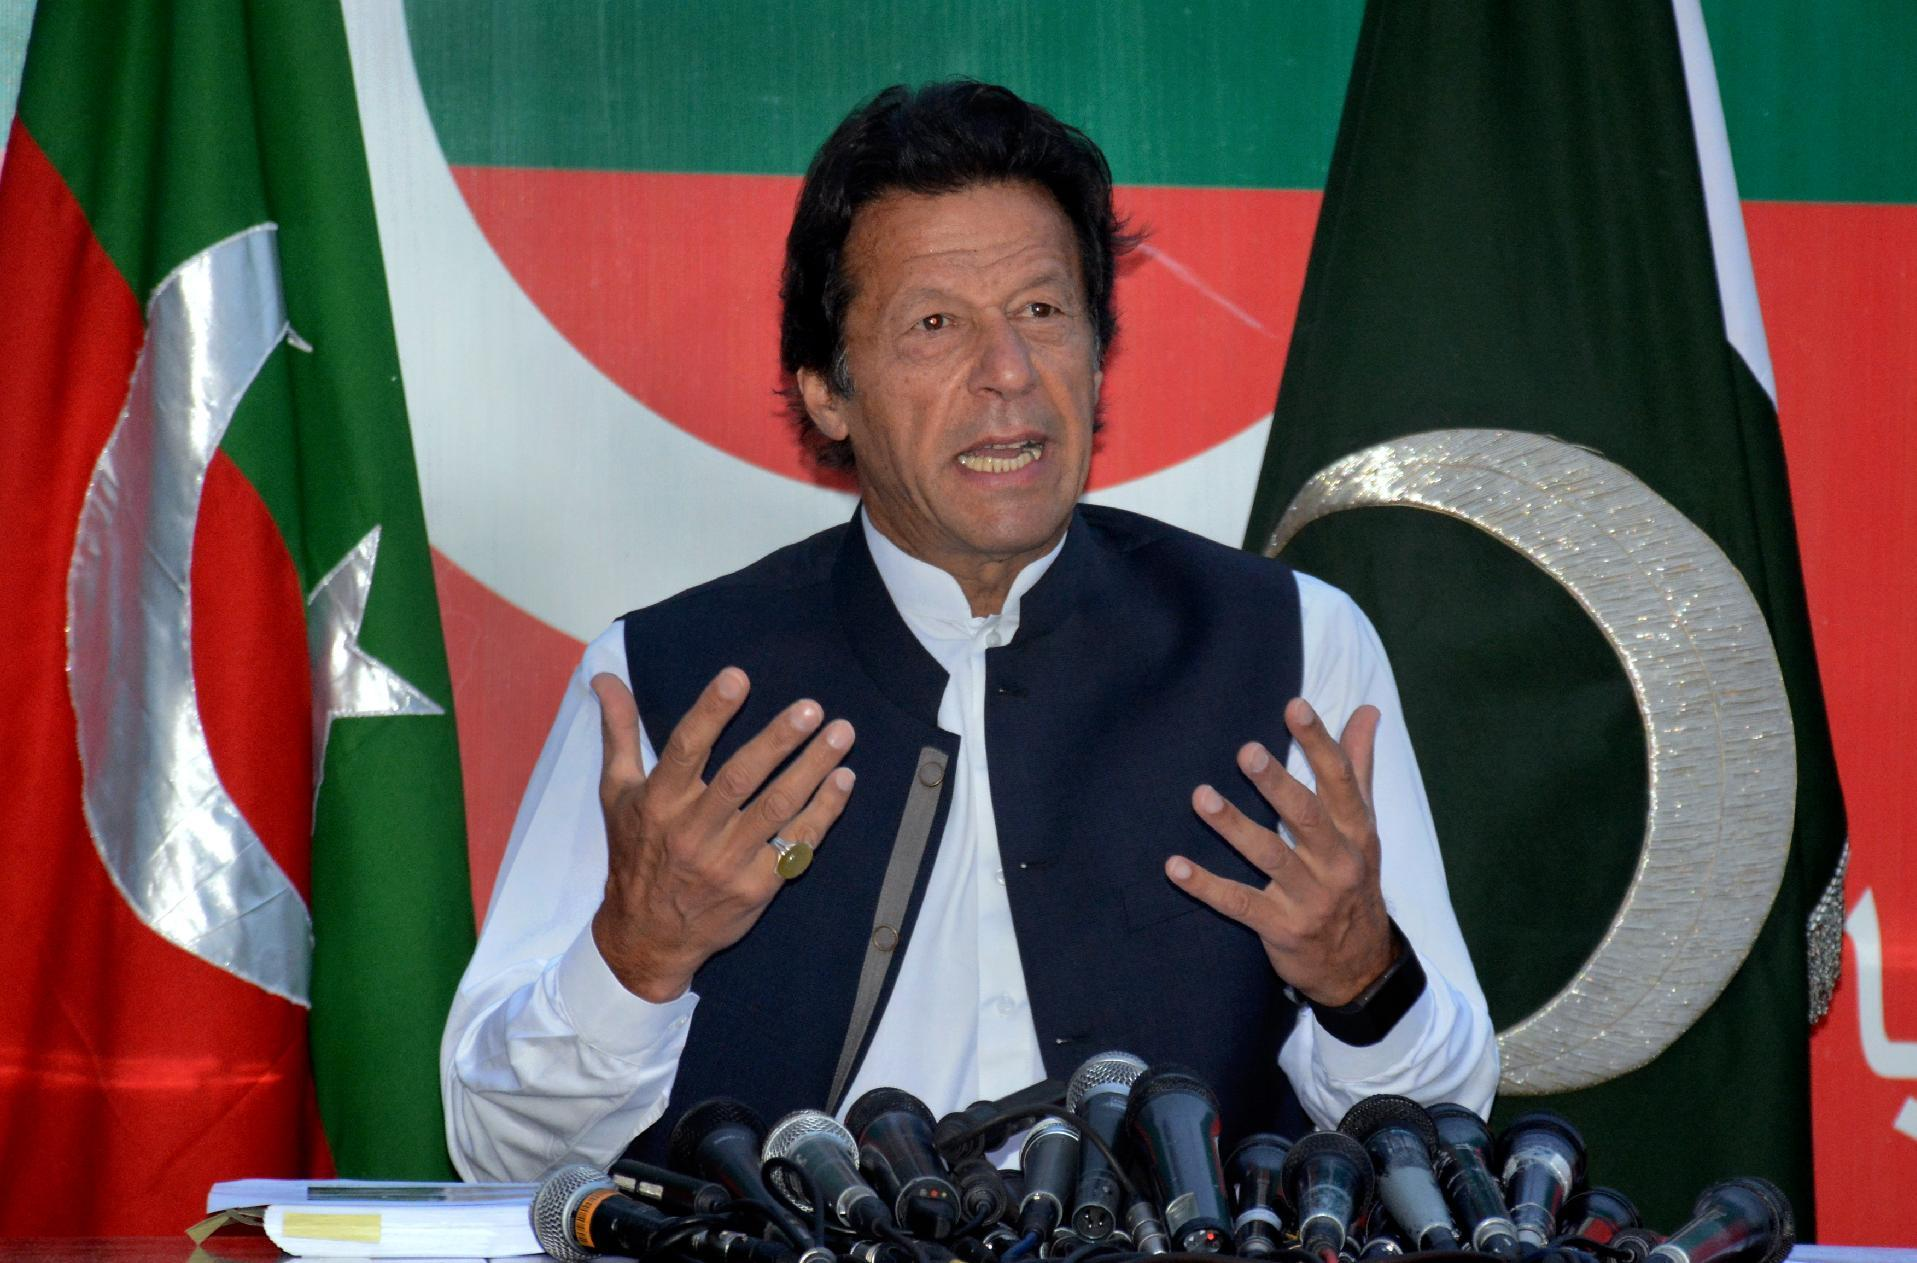 pakistan-s-imran-khan-calls-for-nationwide-protests-ahead-of-capital-lockdown